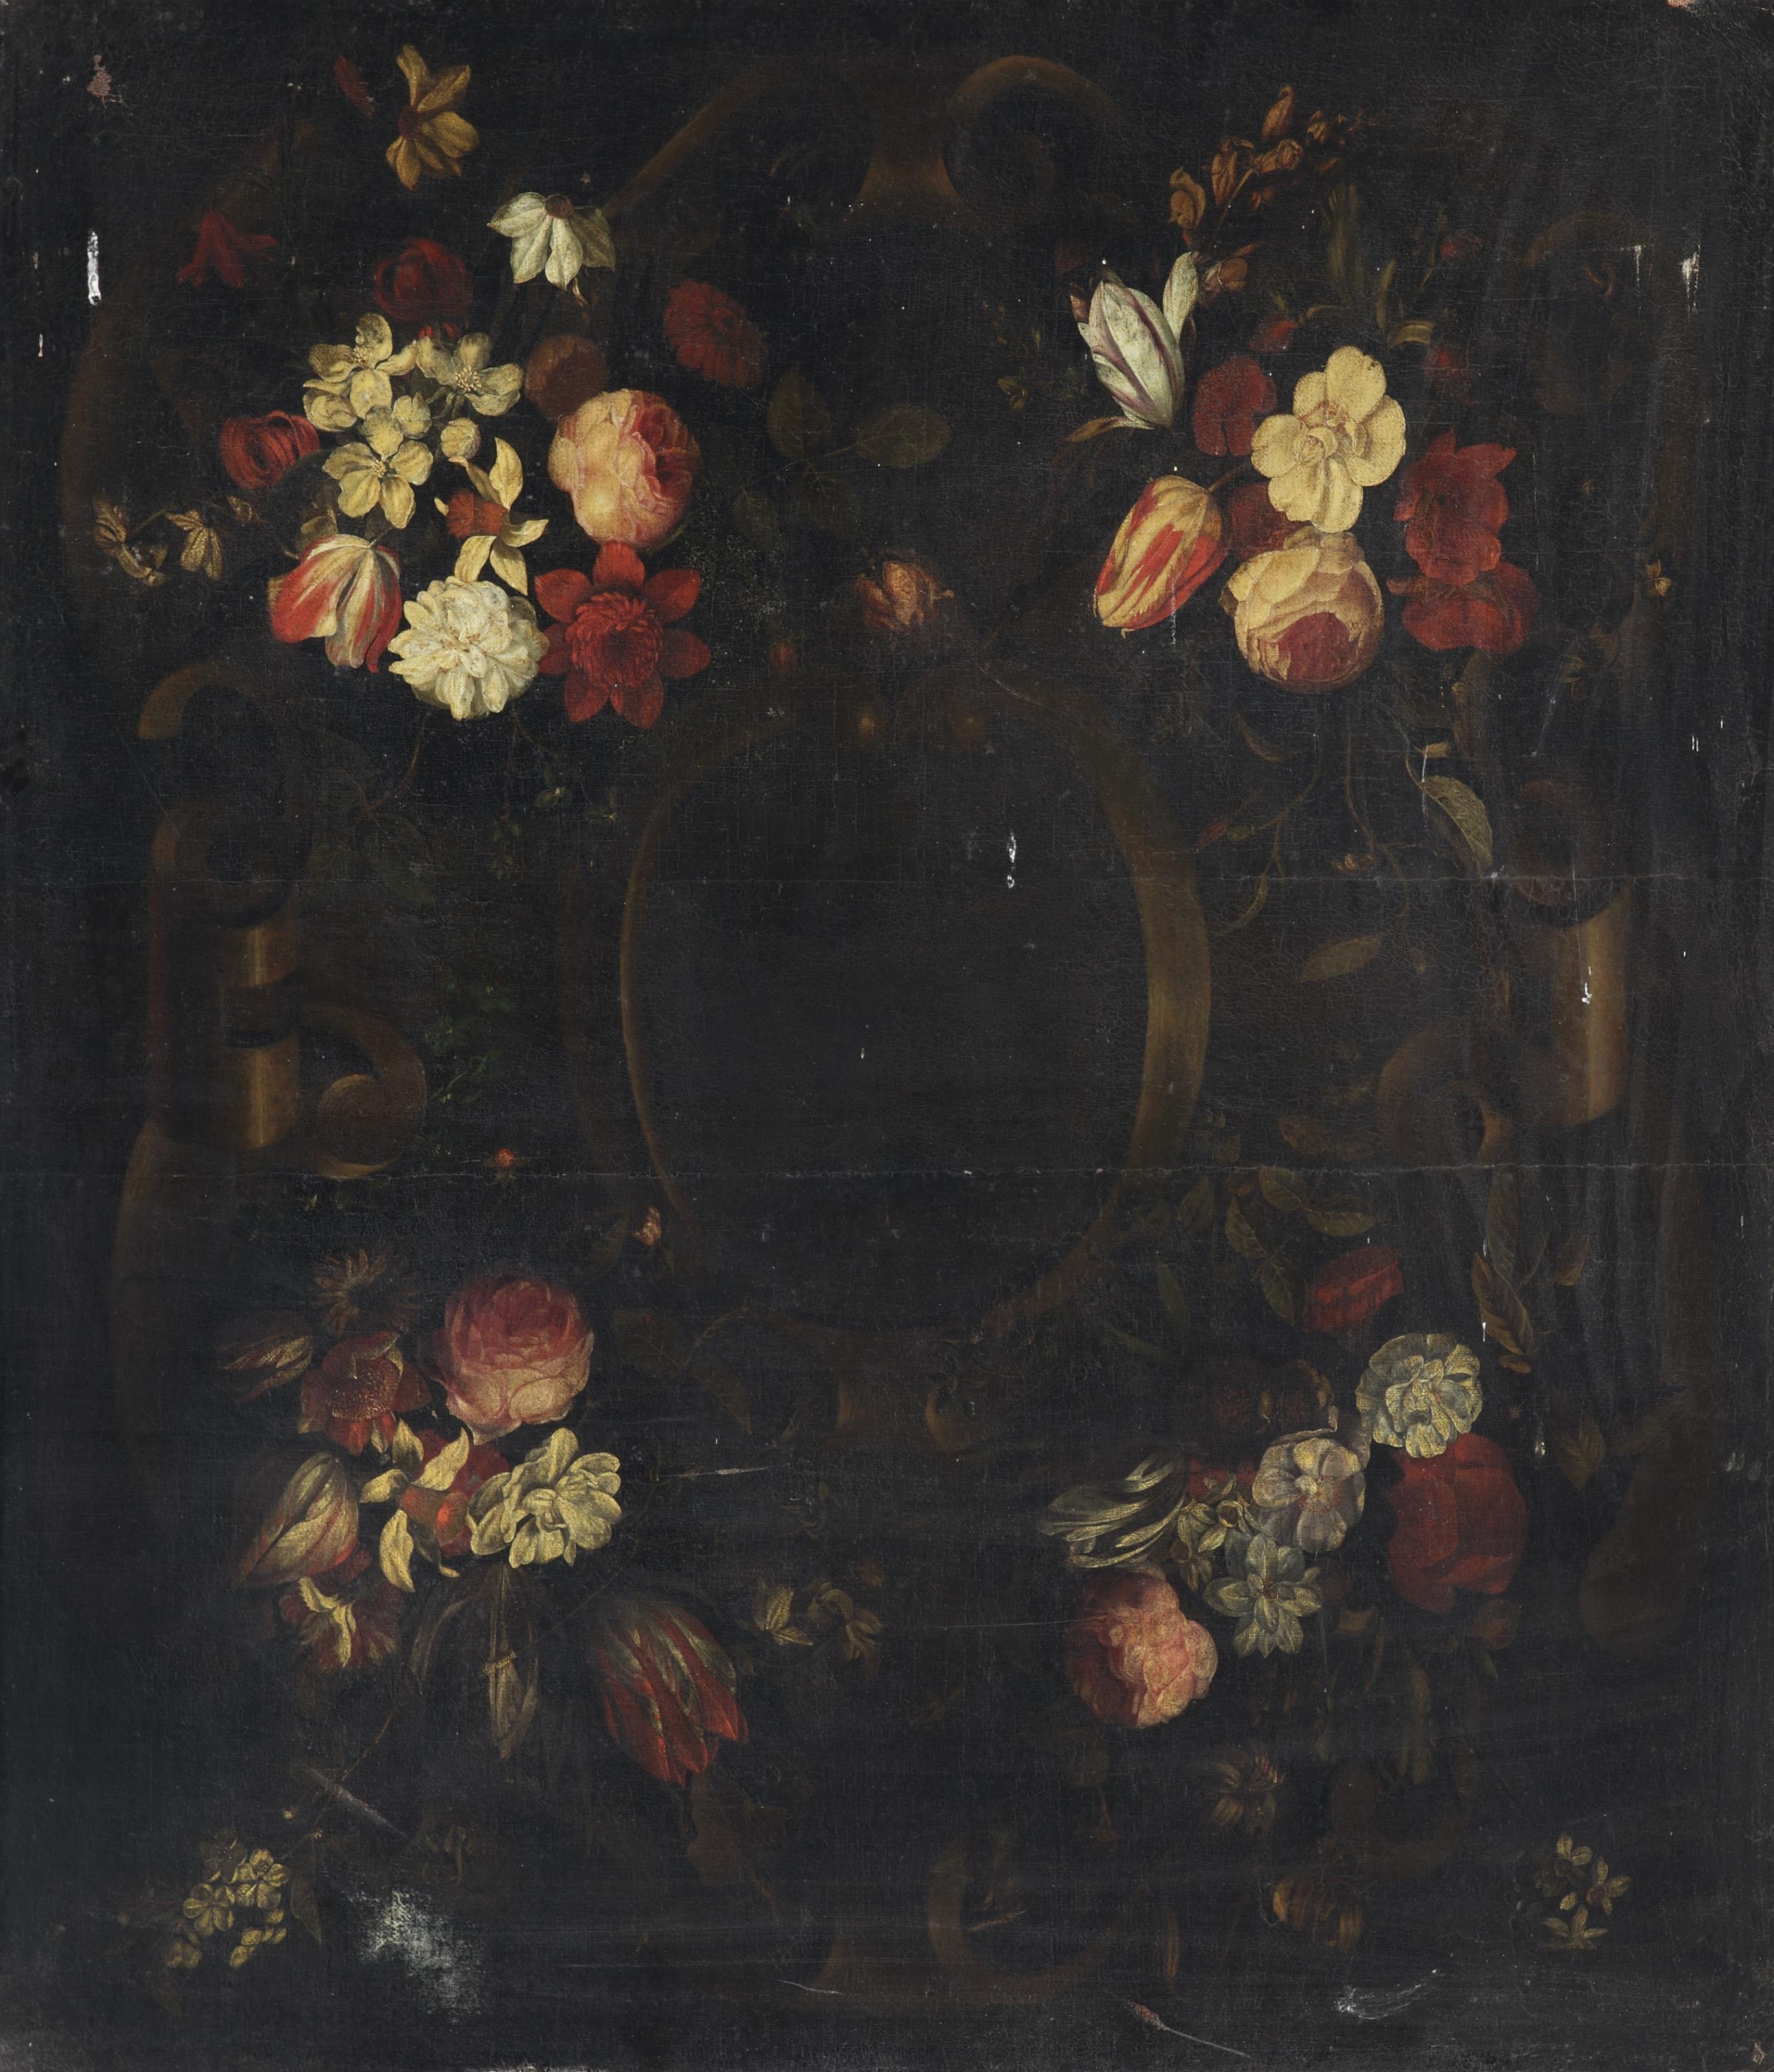 A stone cartouche surrounded by flower garlands with tulips, roses, blossoms, daffodils, peonies and daisies